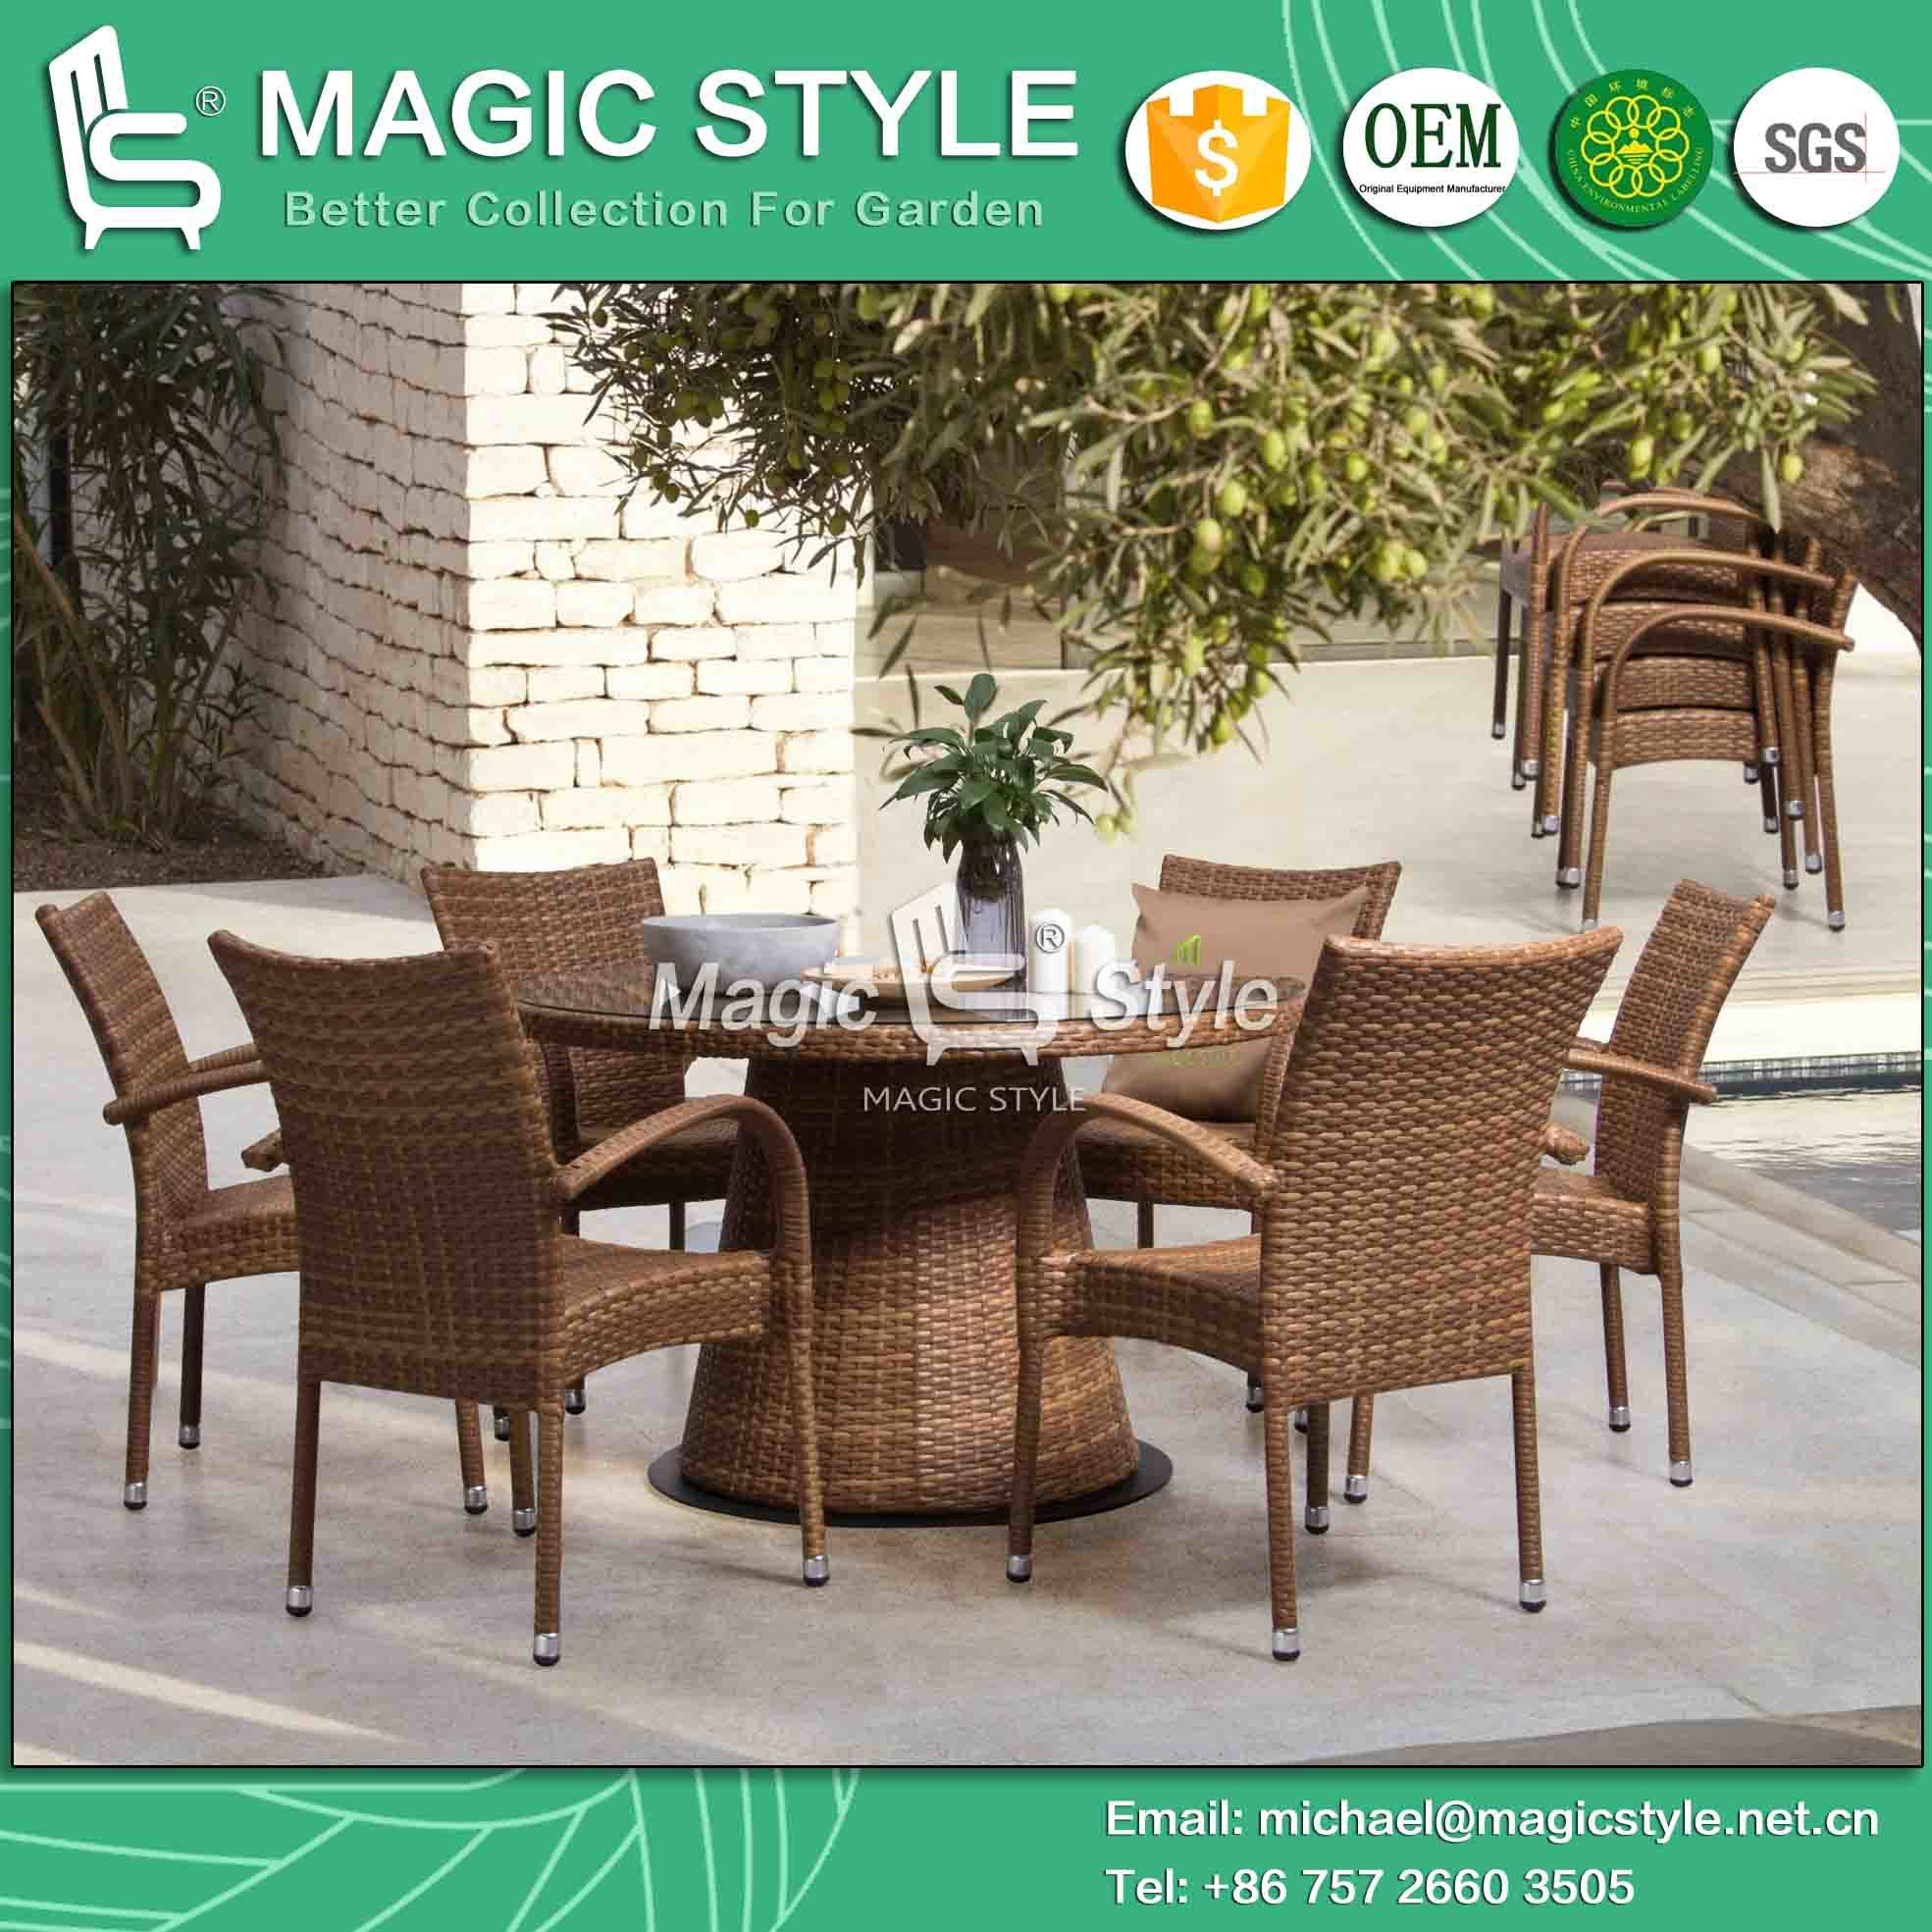 Outdoor Wicker Dining Chairs Hot Item Outdoor Wicker Dining Chair With Table Patio Rattan Dining Chair Garden Stackable Chair Jada Dining Set Furniture